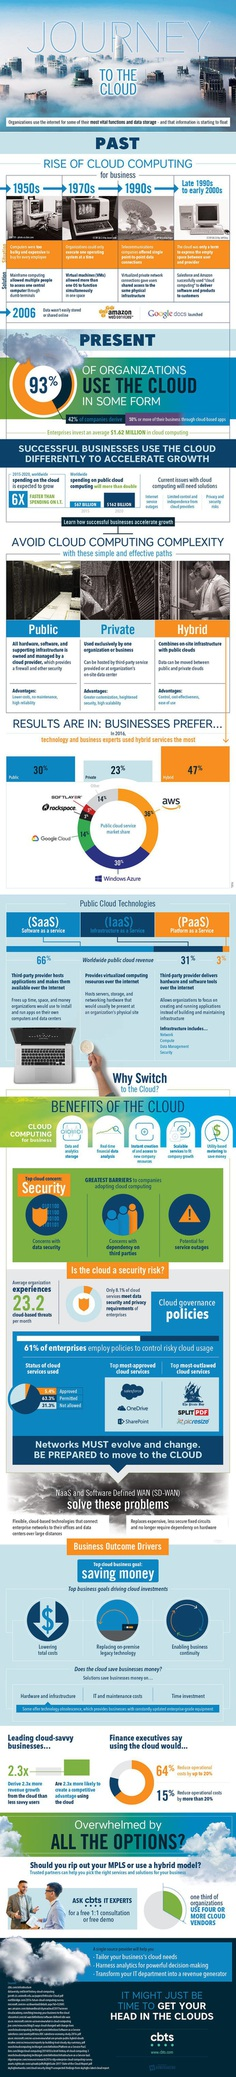 Journey to the Cloud Infographic - why are so many businesses resistant to using the cloud for enterprise?